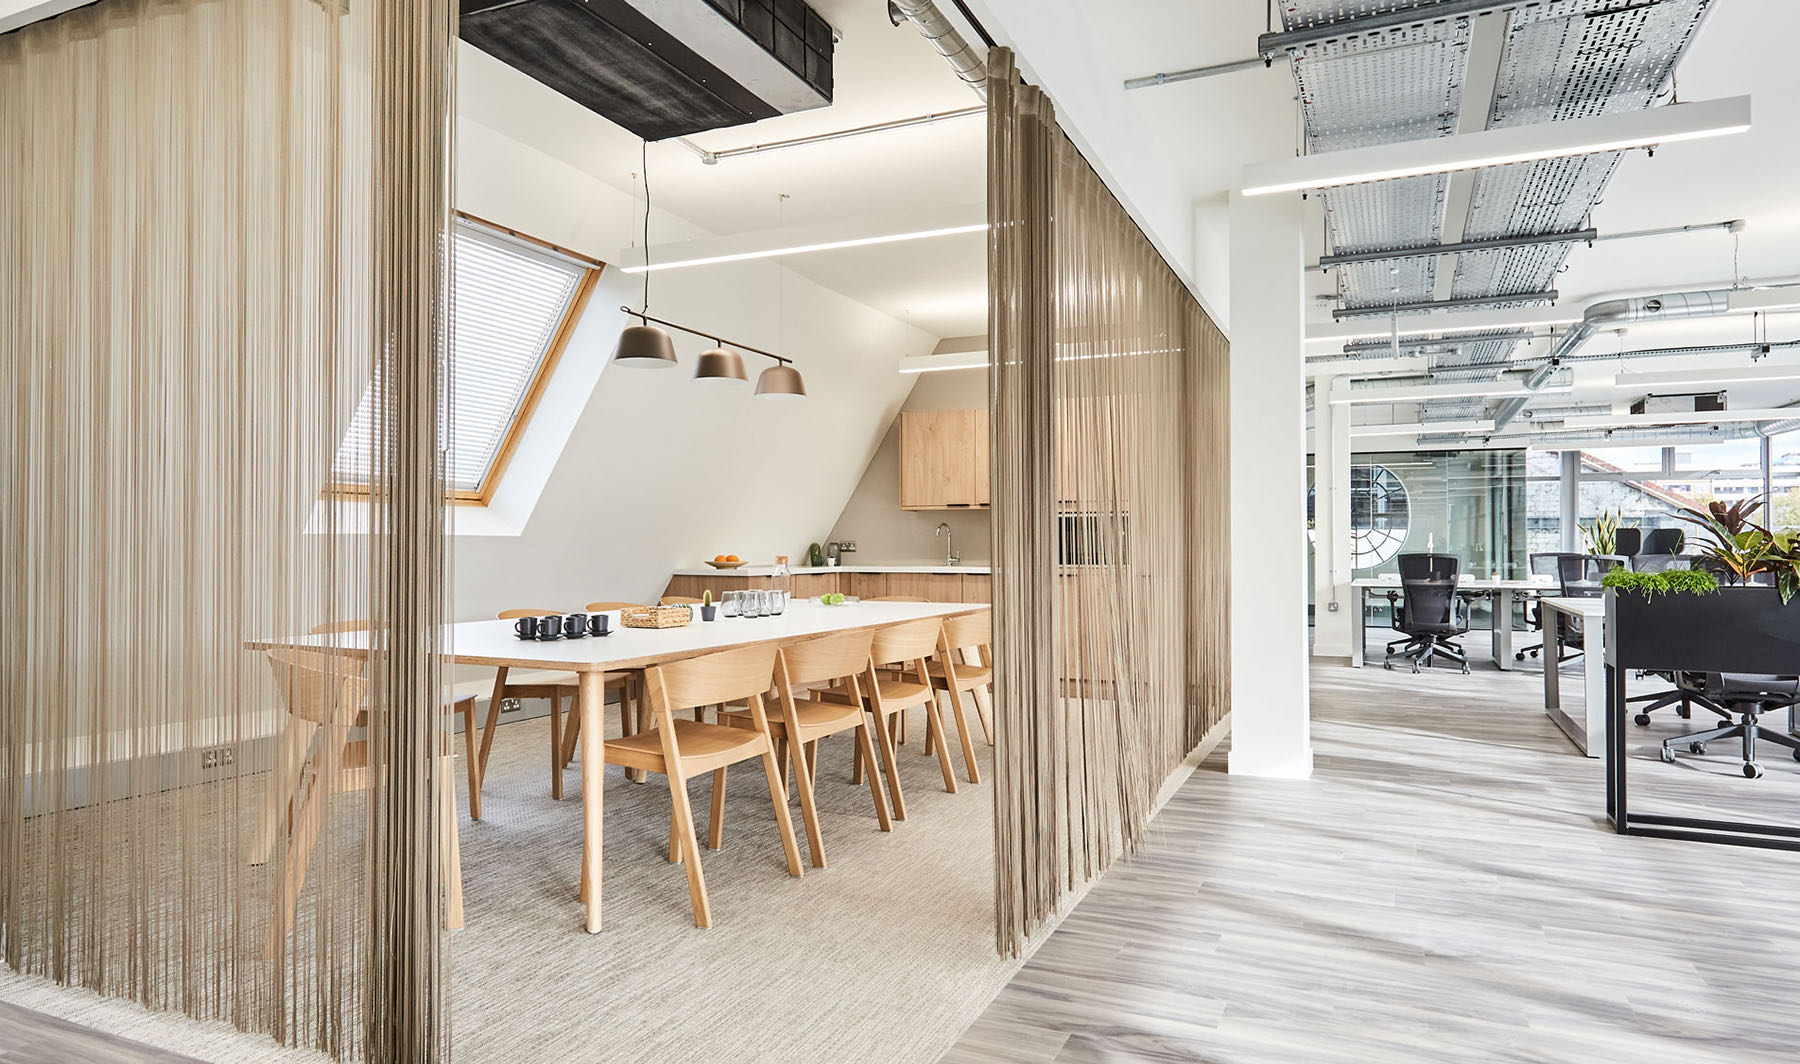 A Look Inside Lighterman House's New London Office